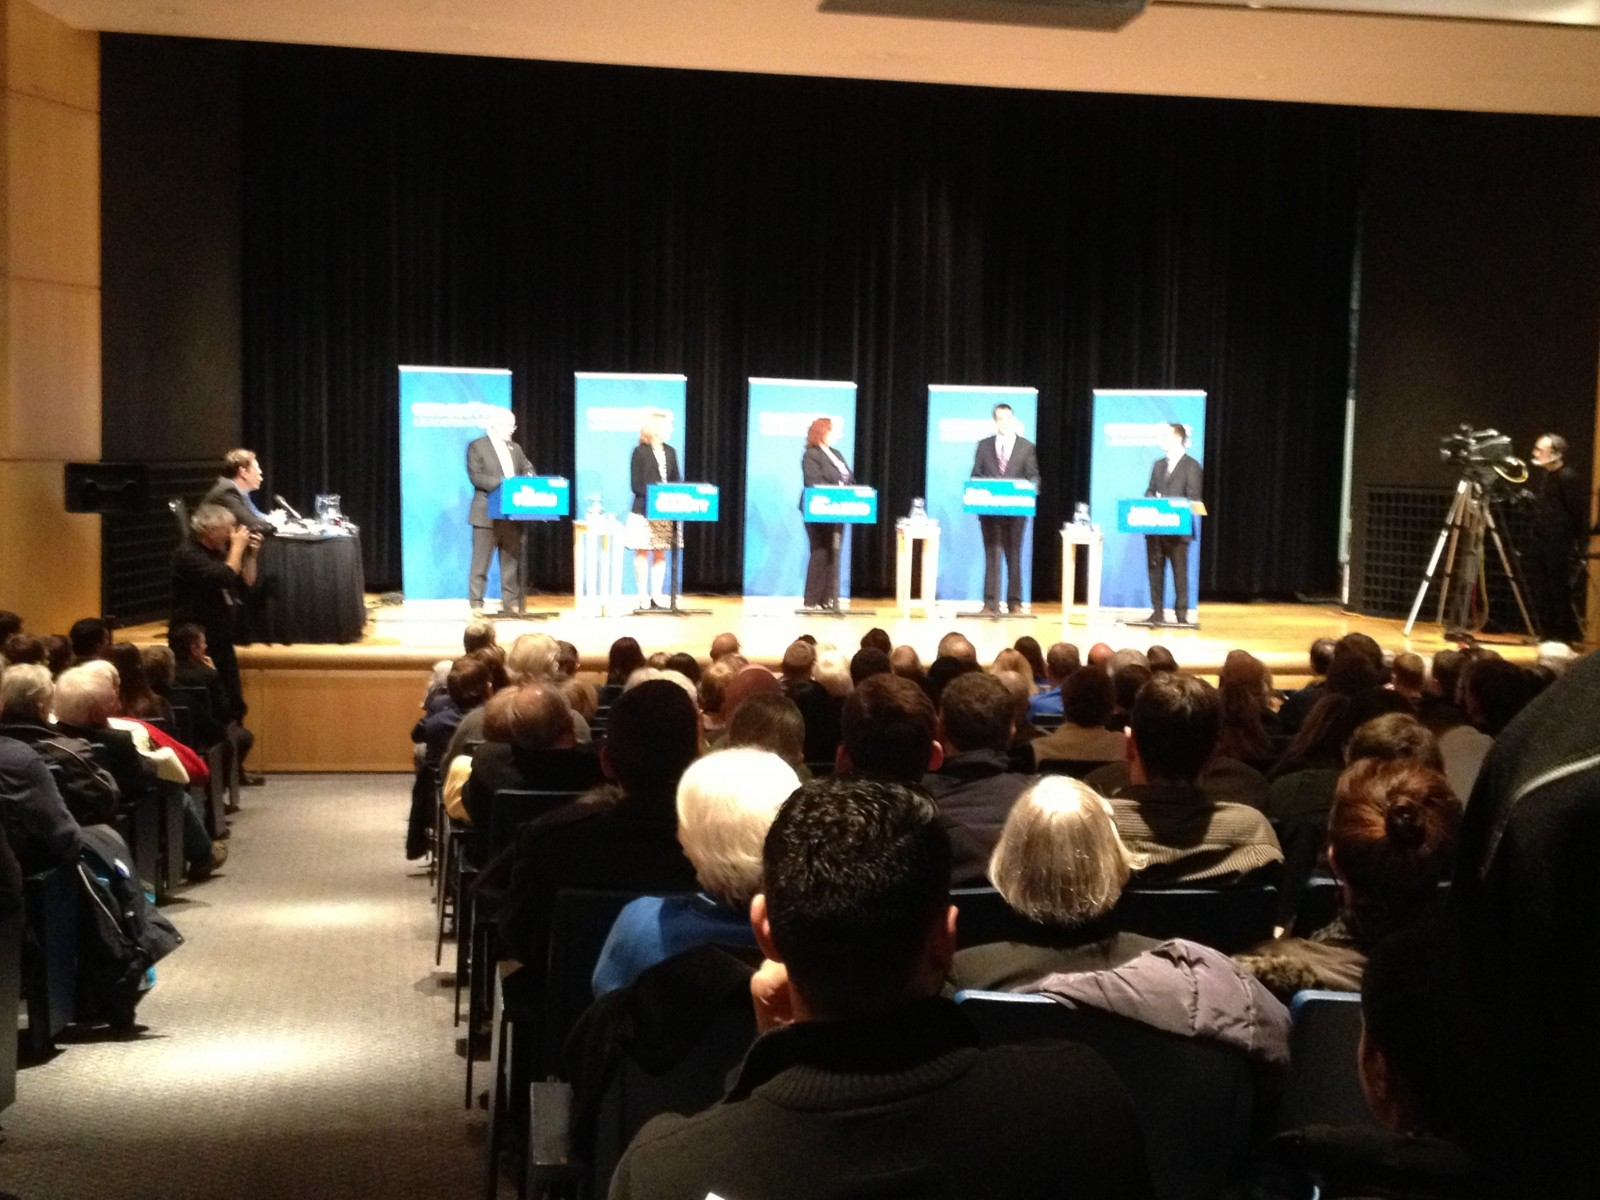 Sparks fly at Ontario PC leader debate